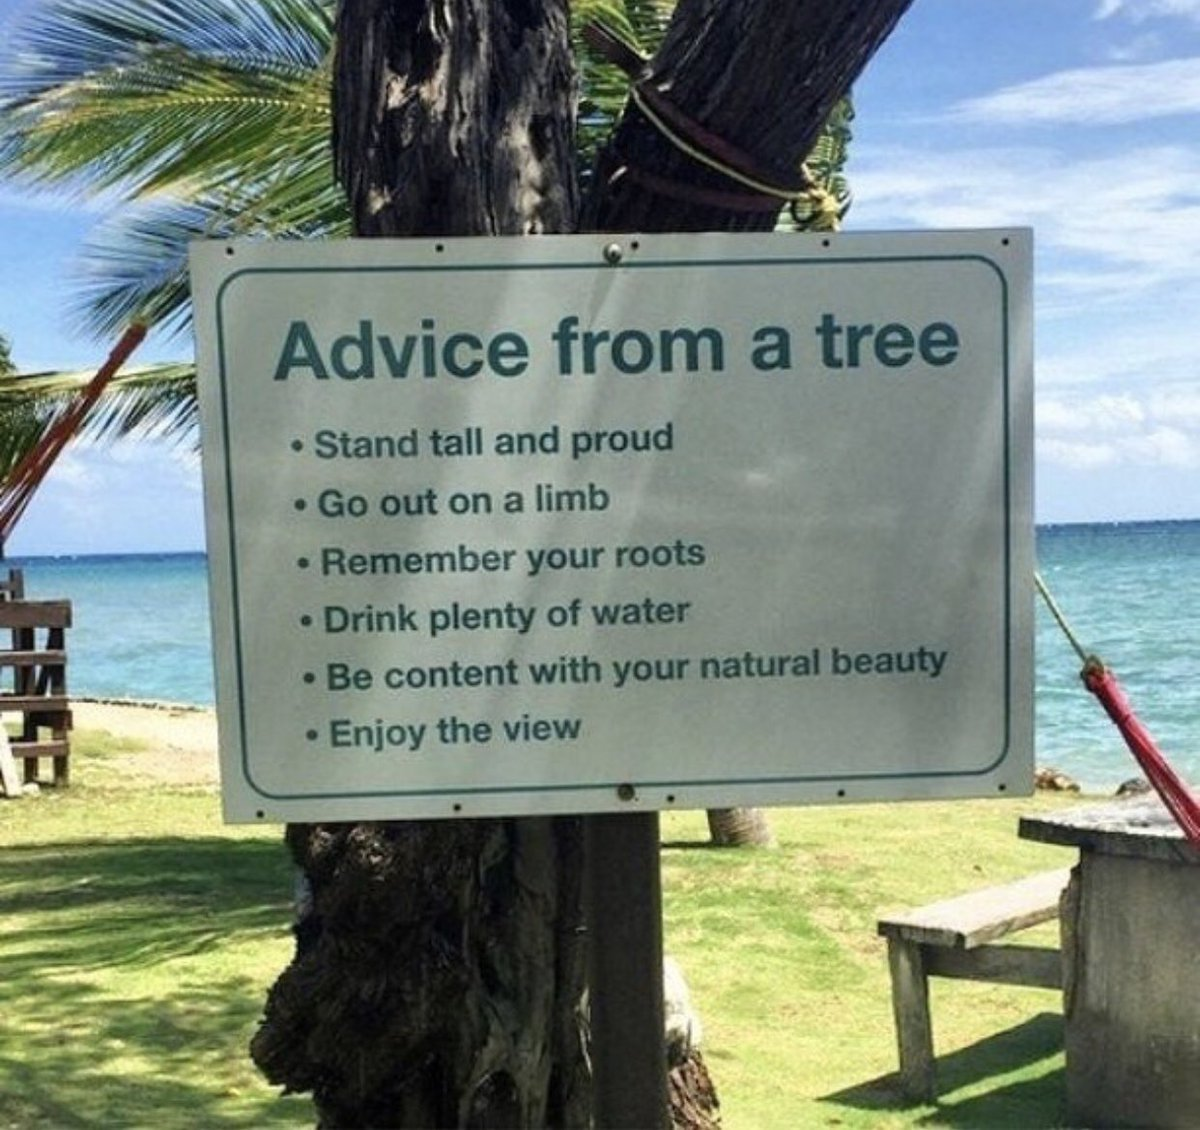 Advice from a tree— Stand TALL my friends 🌴